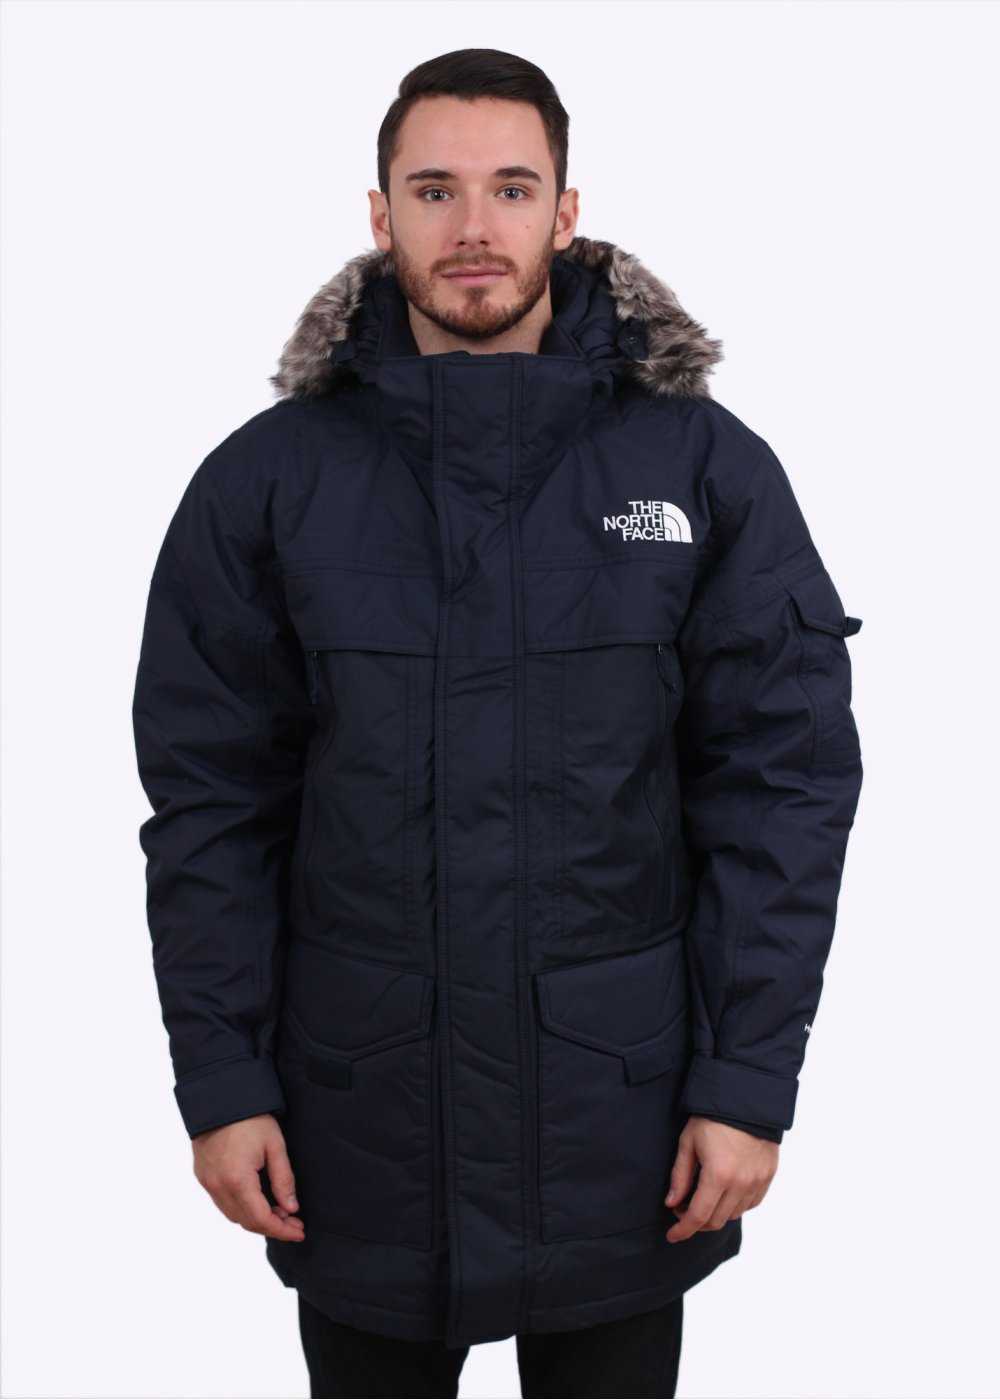 the north face mcmurdo parka 2 urban decay. Black Bedroom Furniture Sets. Home Design Ideas